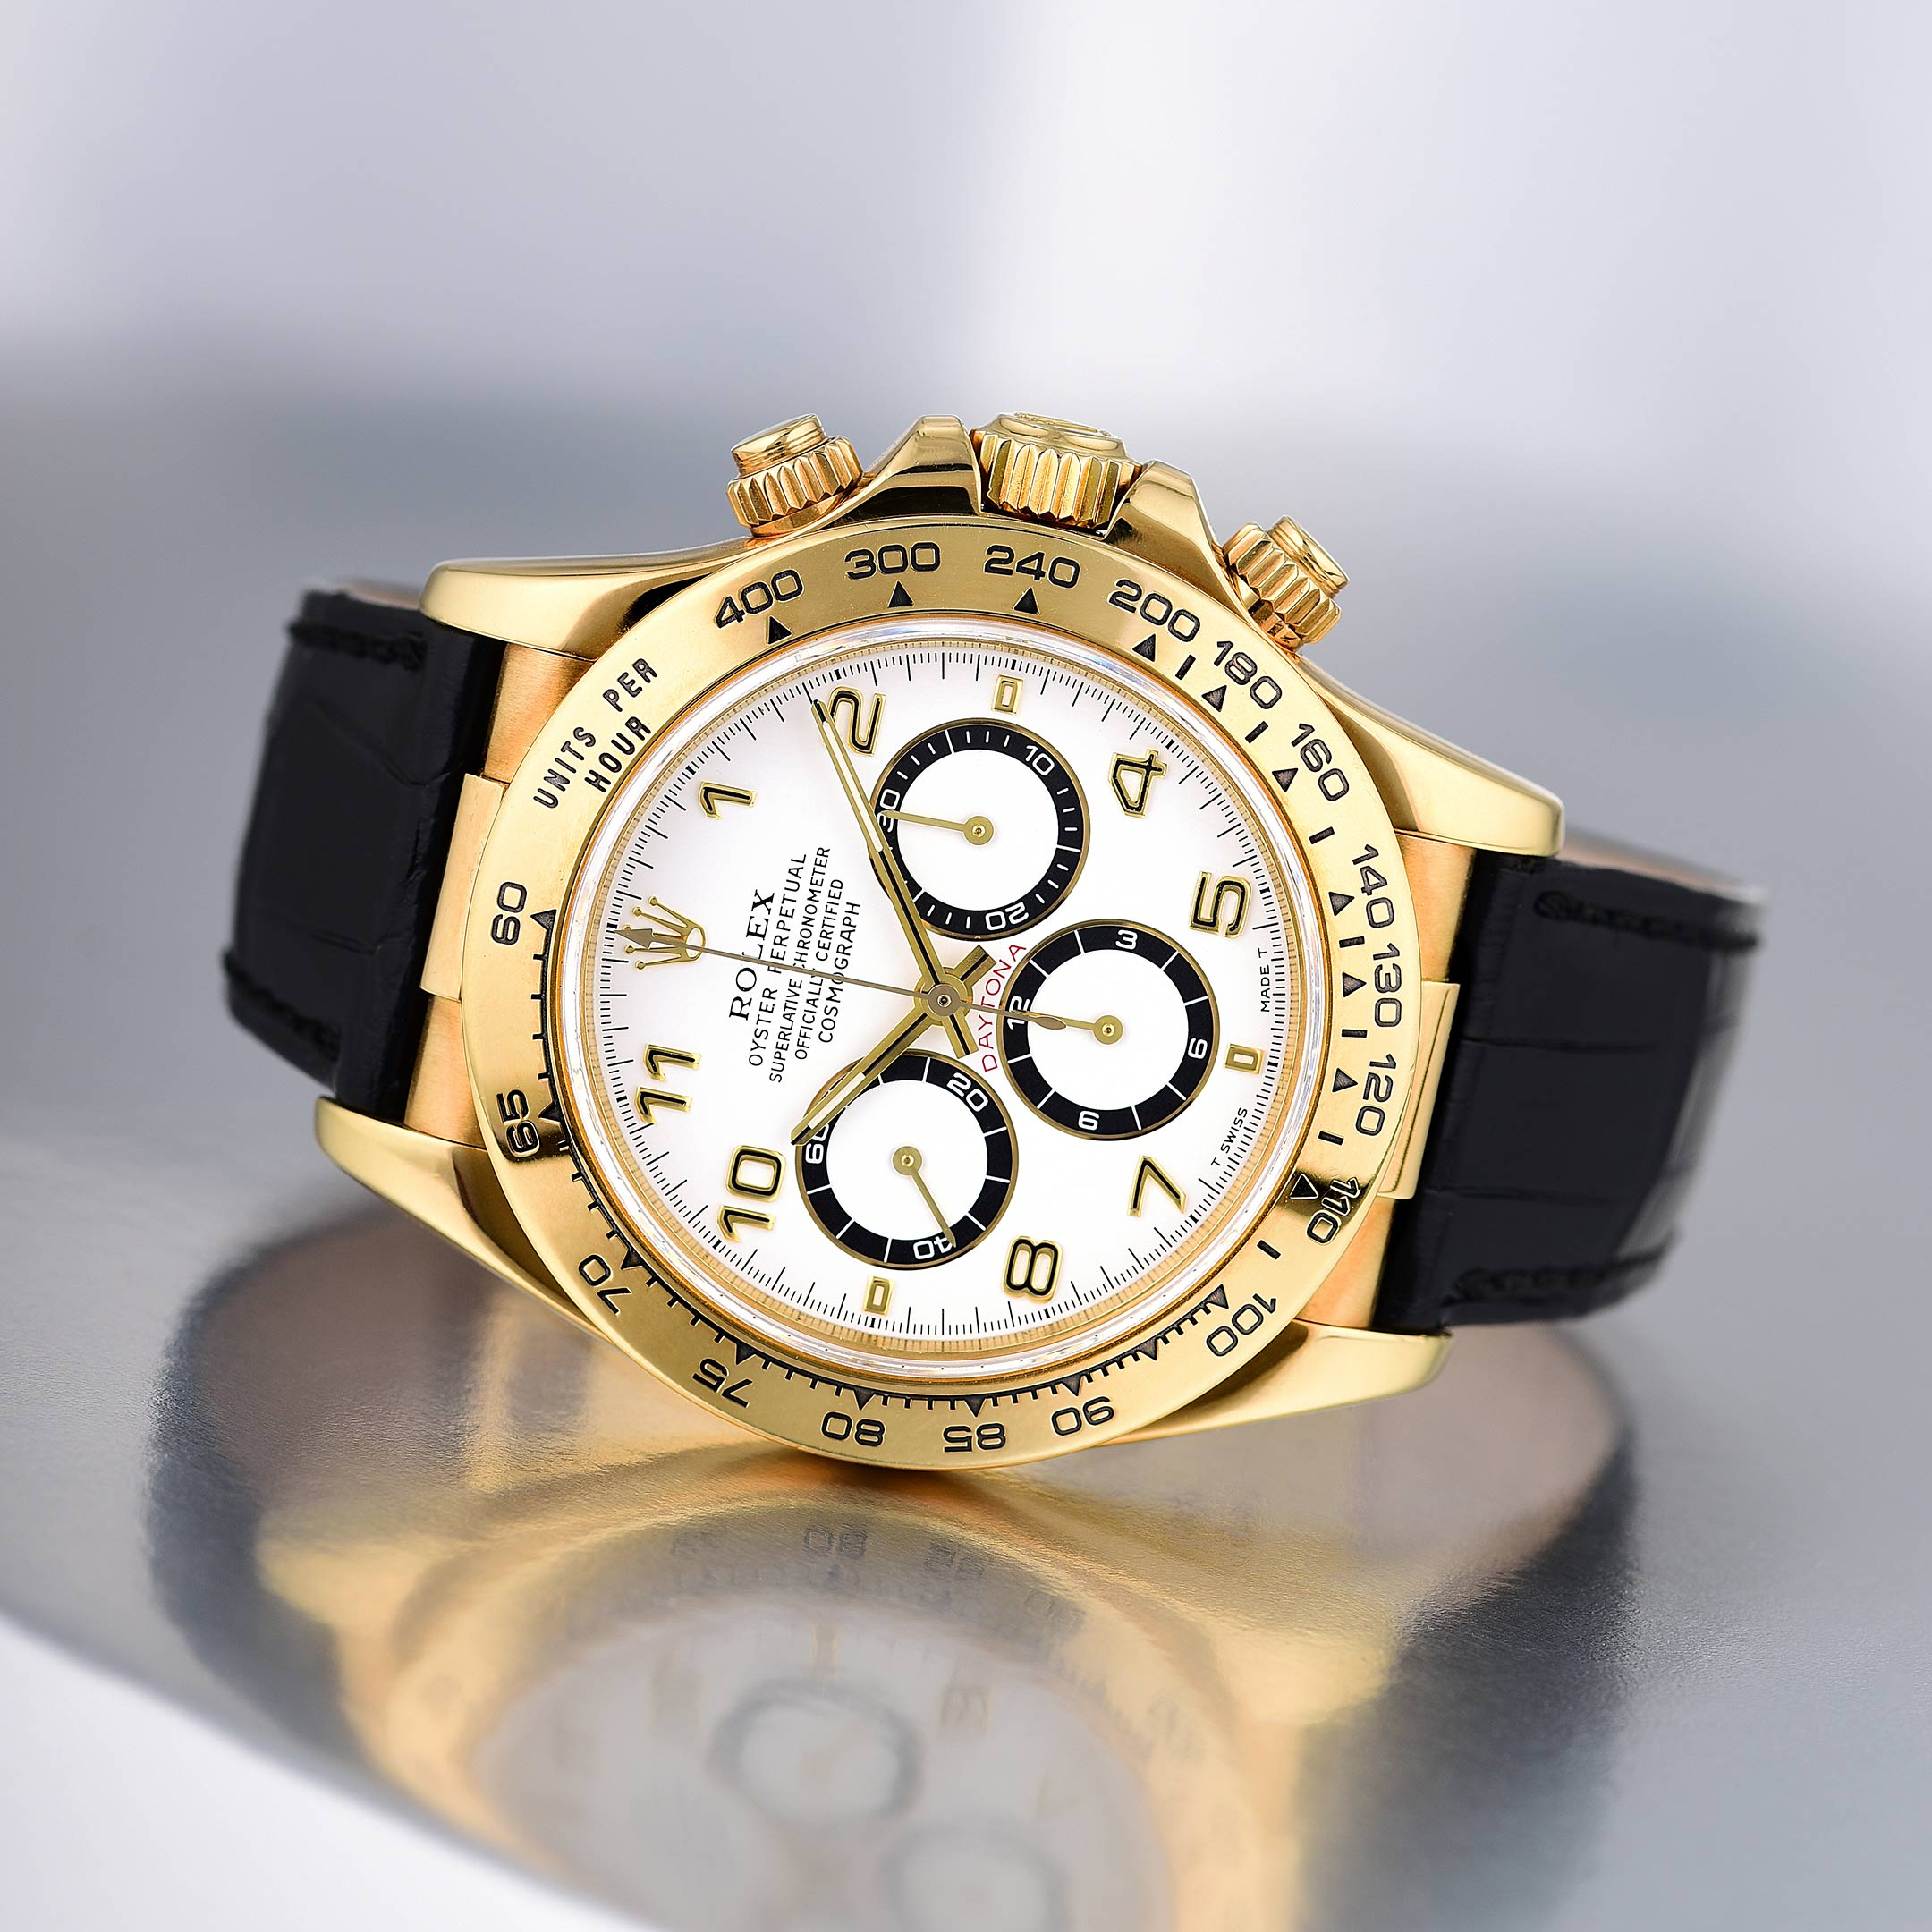 Rolex Daytona Ref. 16518 in Yellow Gold - Fortuna NYC Fine Jewelry & Watch Auction